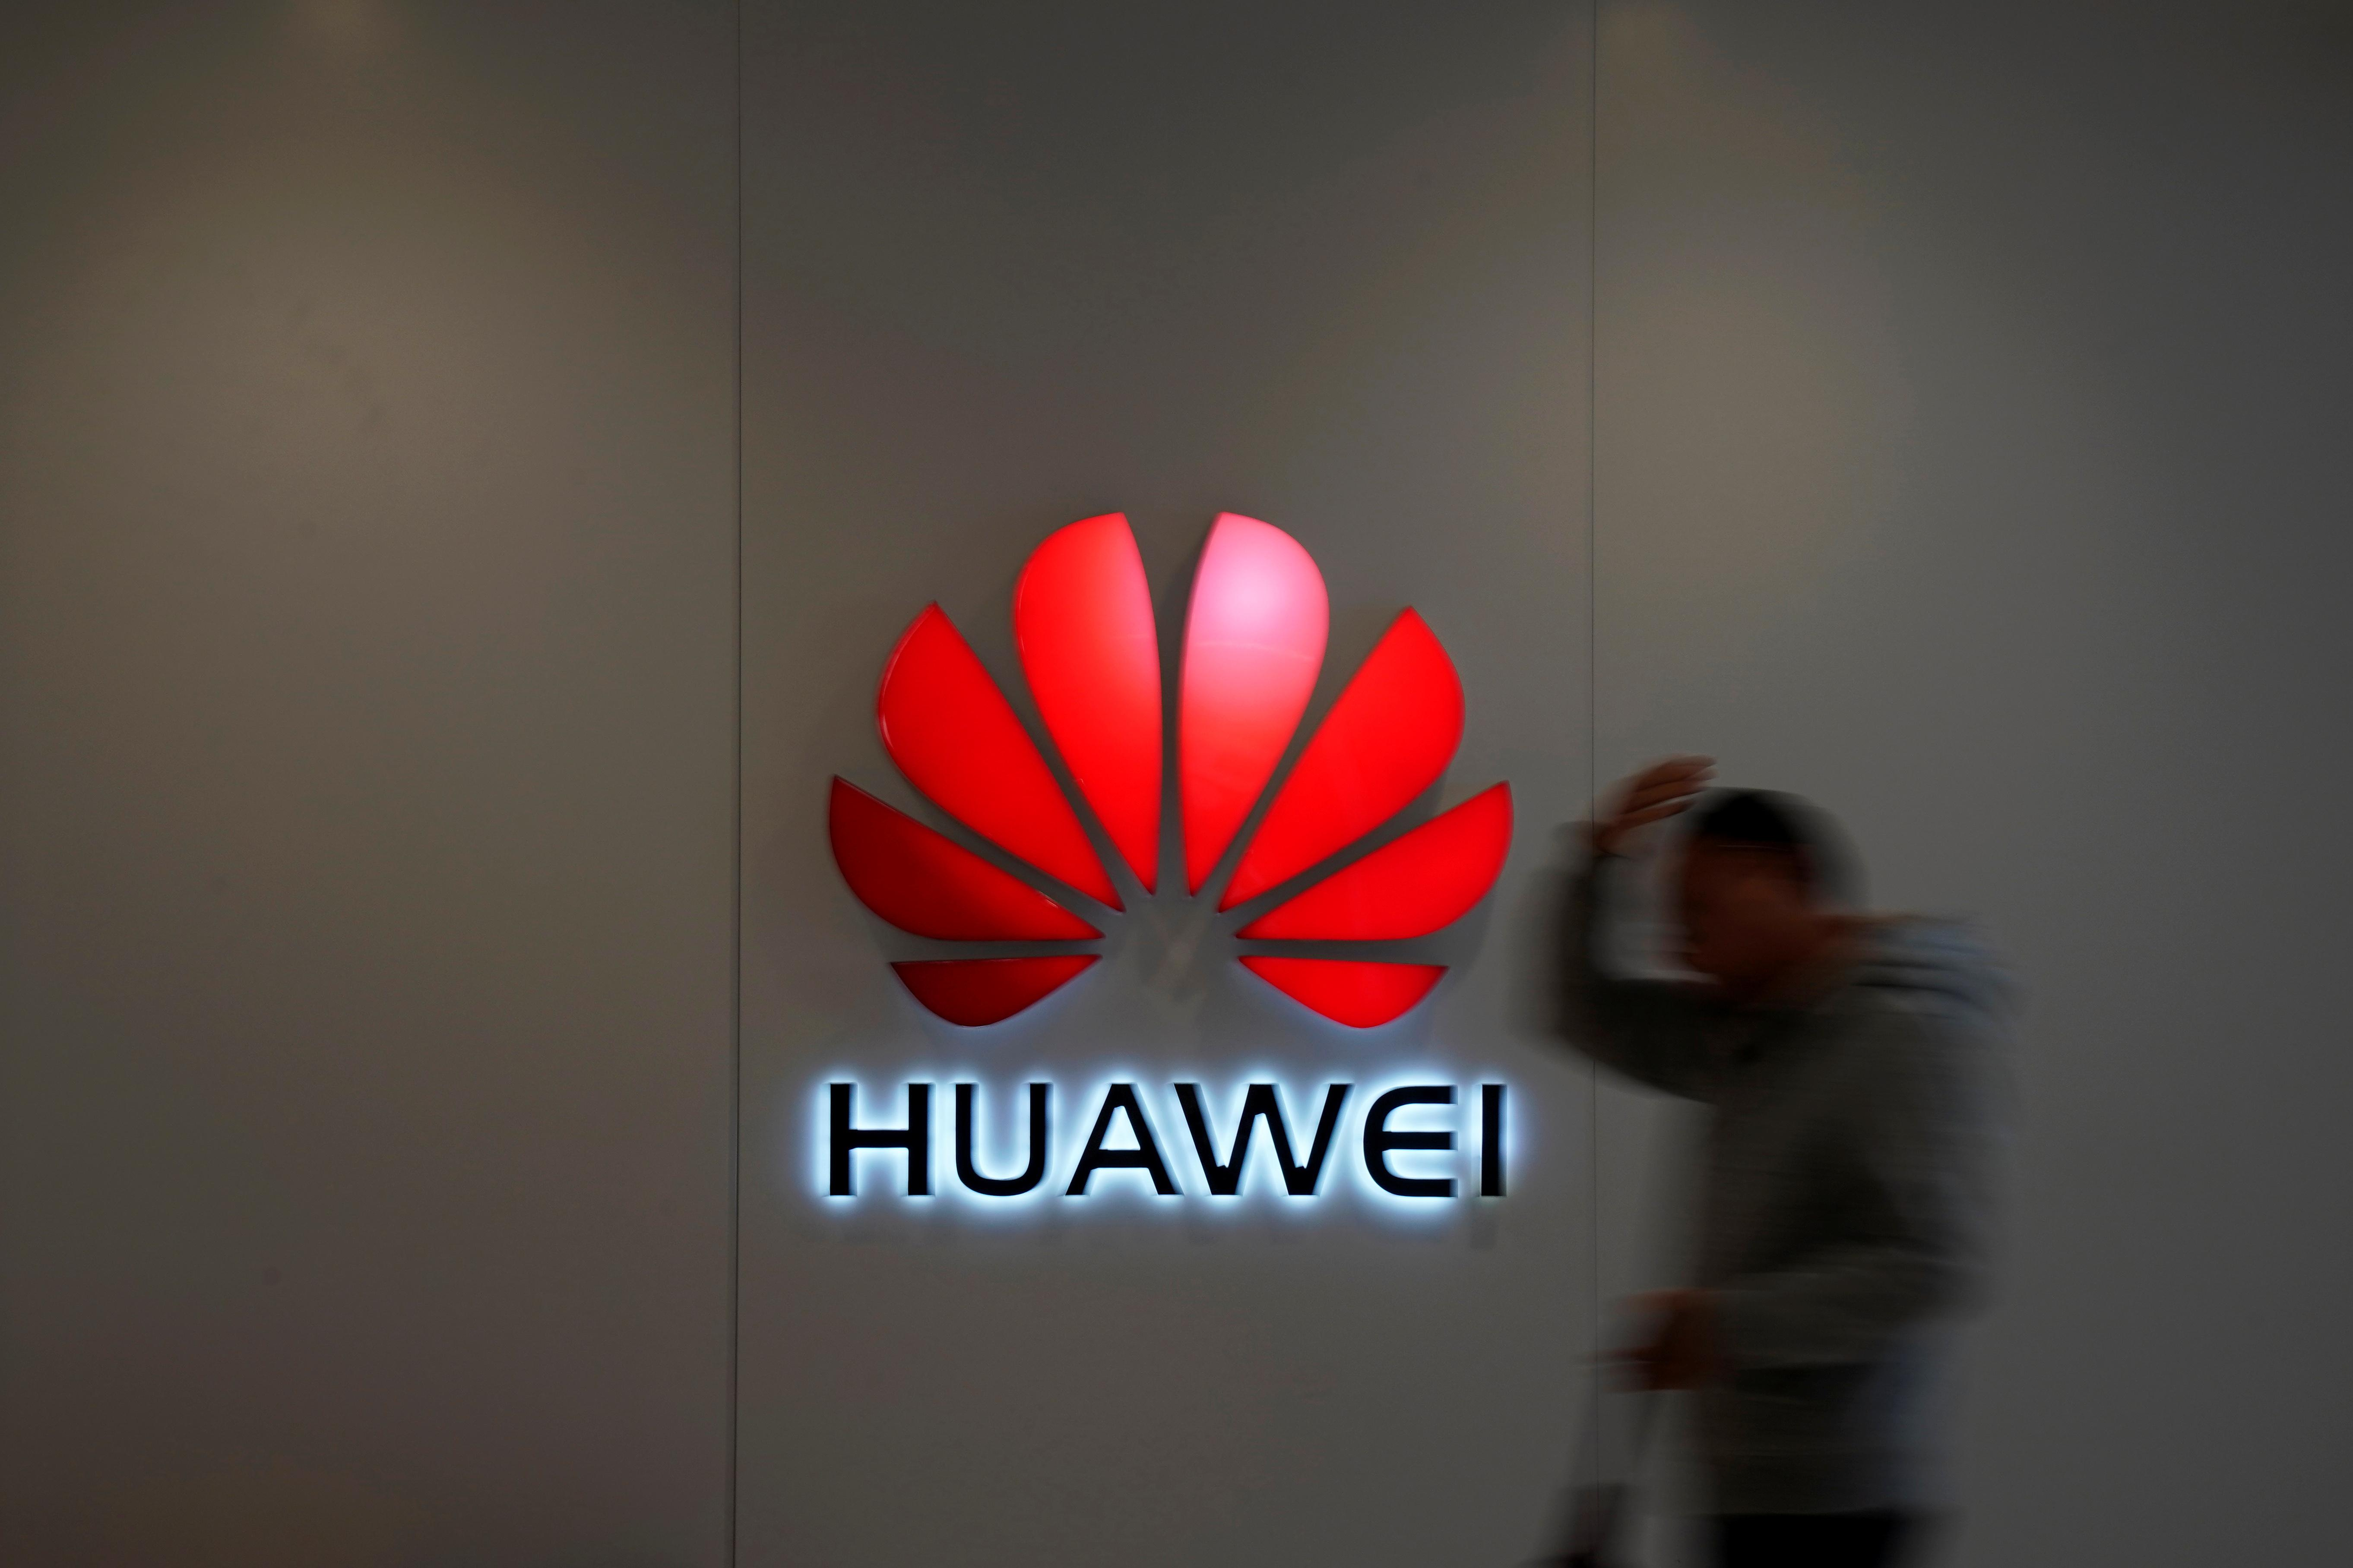 Explainer: Who is China's Huawei Technologies and why is it controversial?